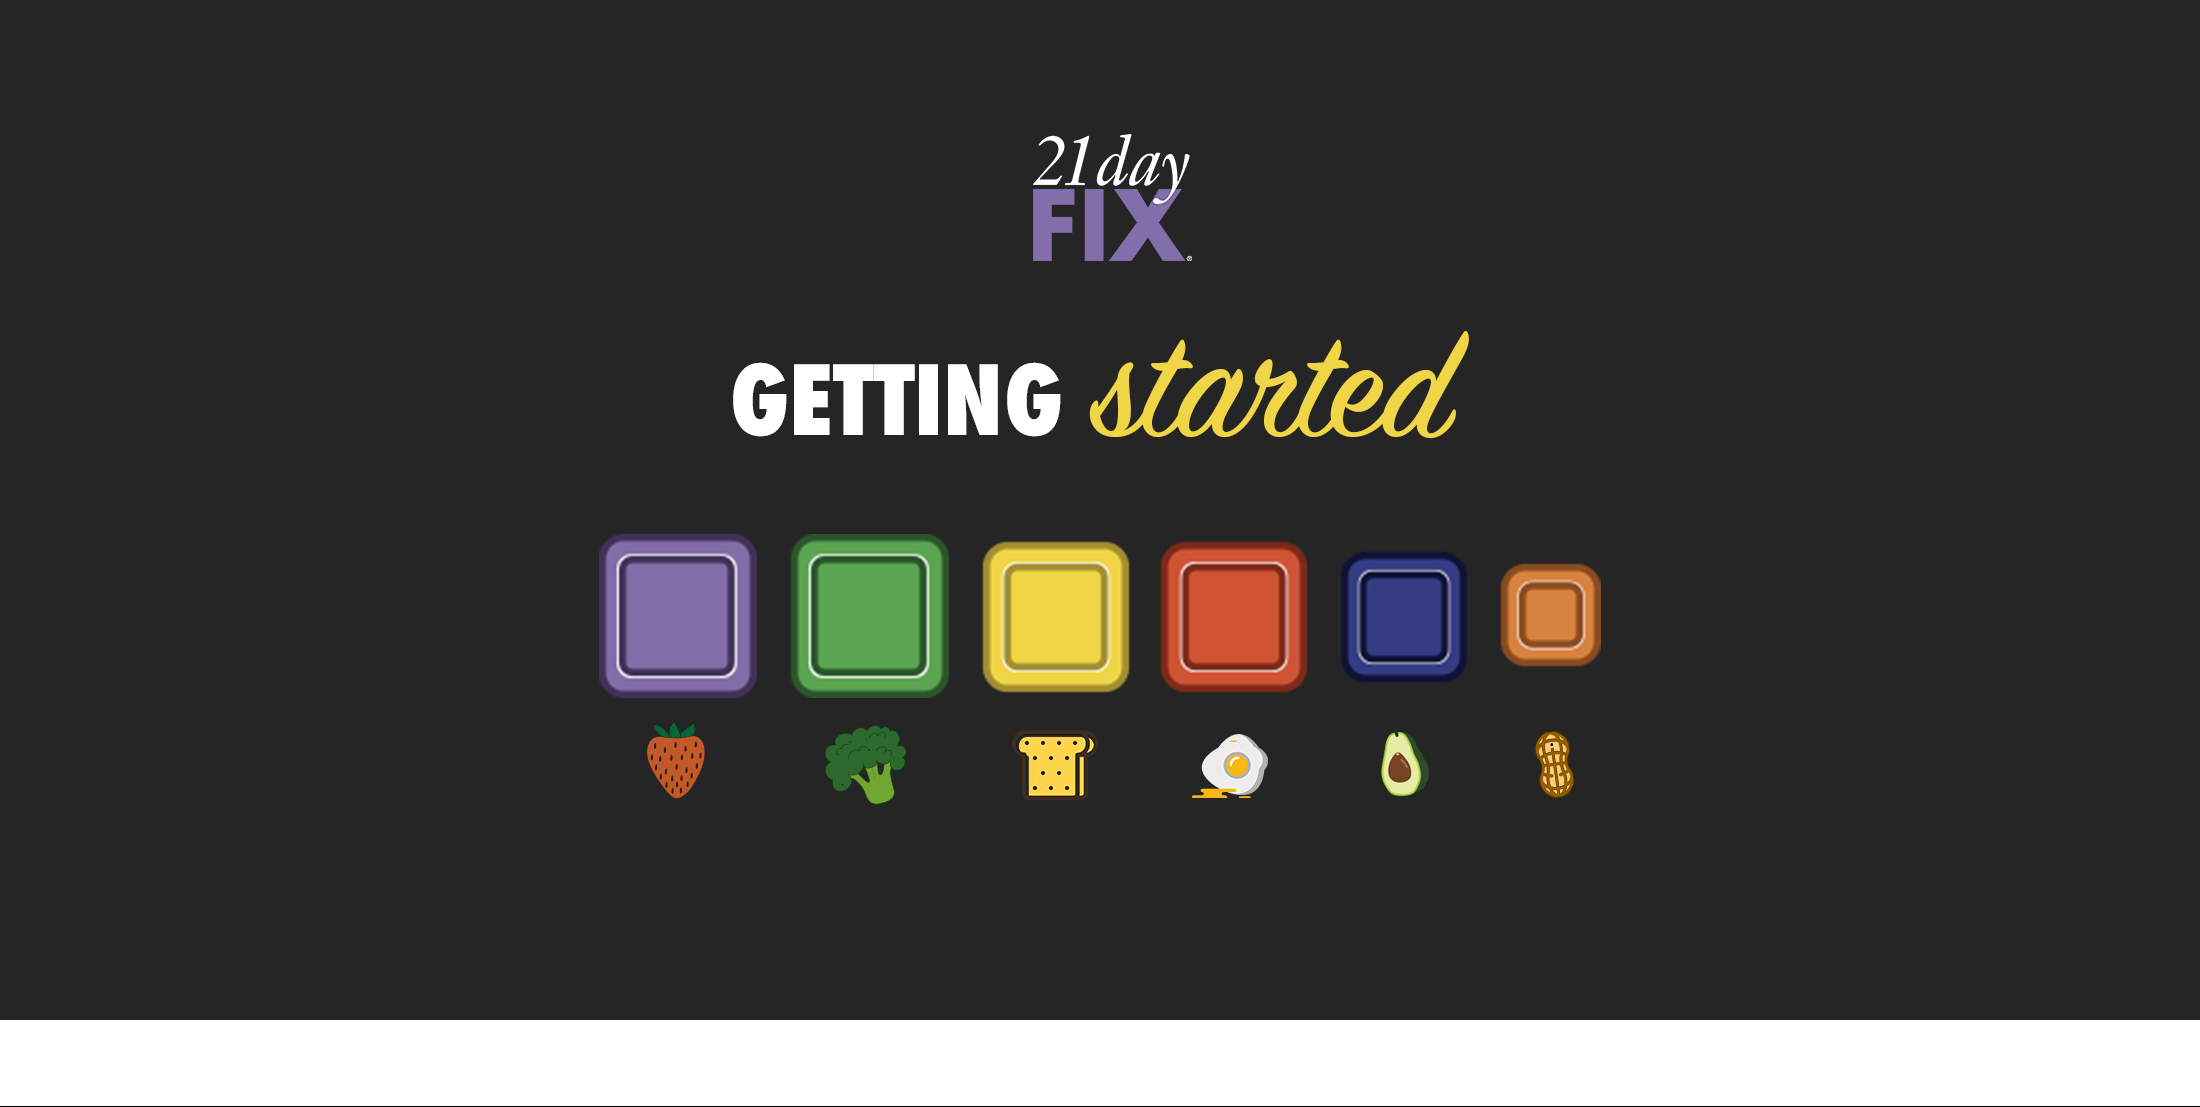 Starting 21 Day Fix is simple